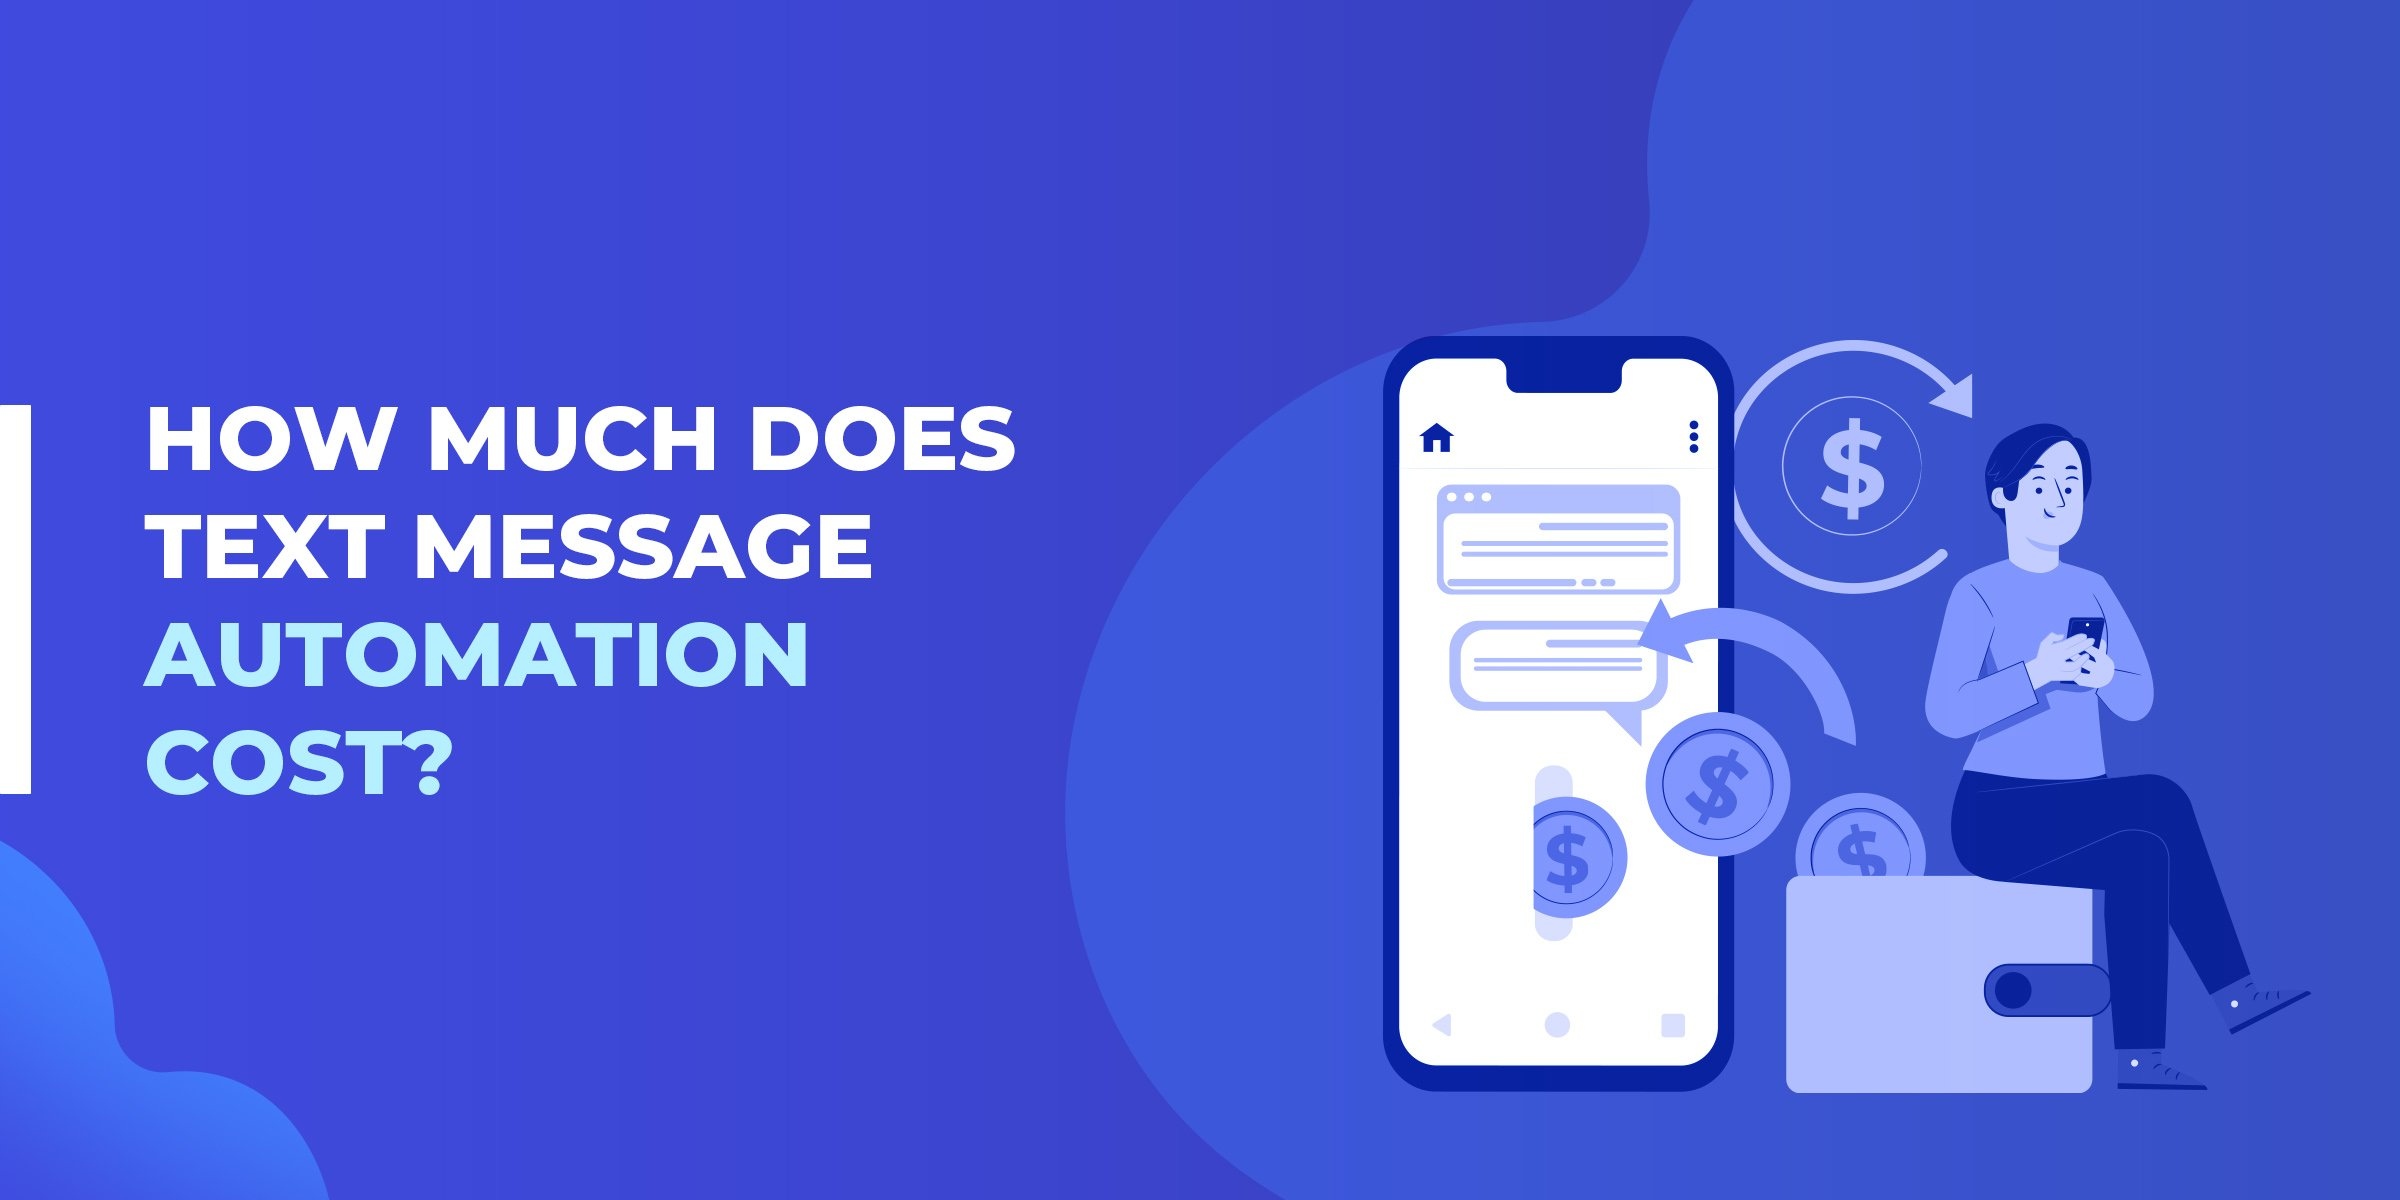 How Much Does Text Message Automation Cost